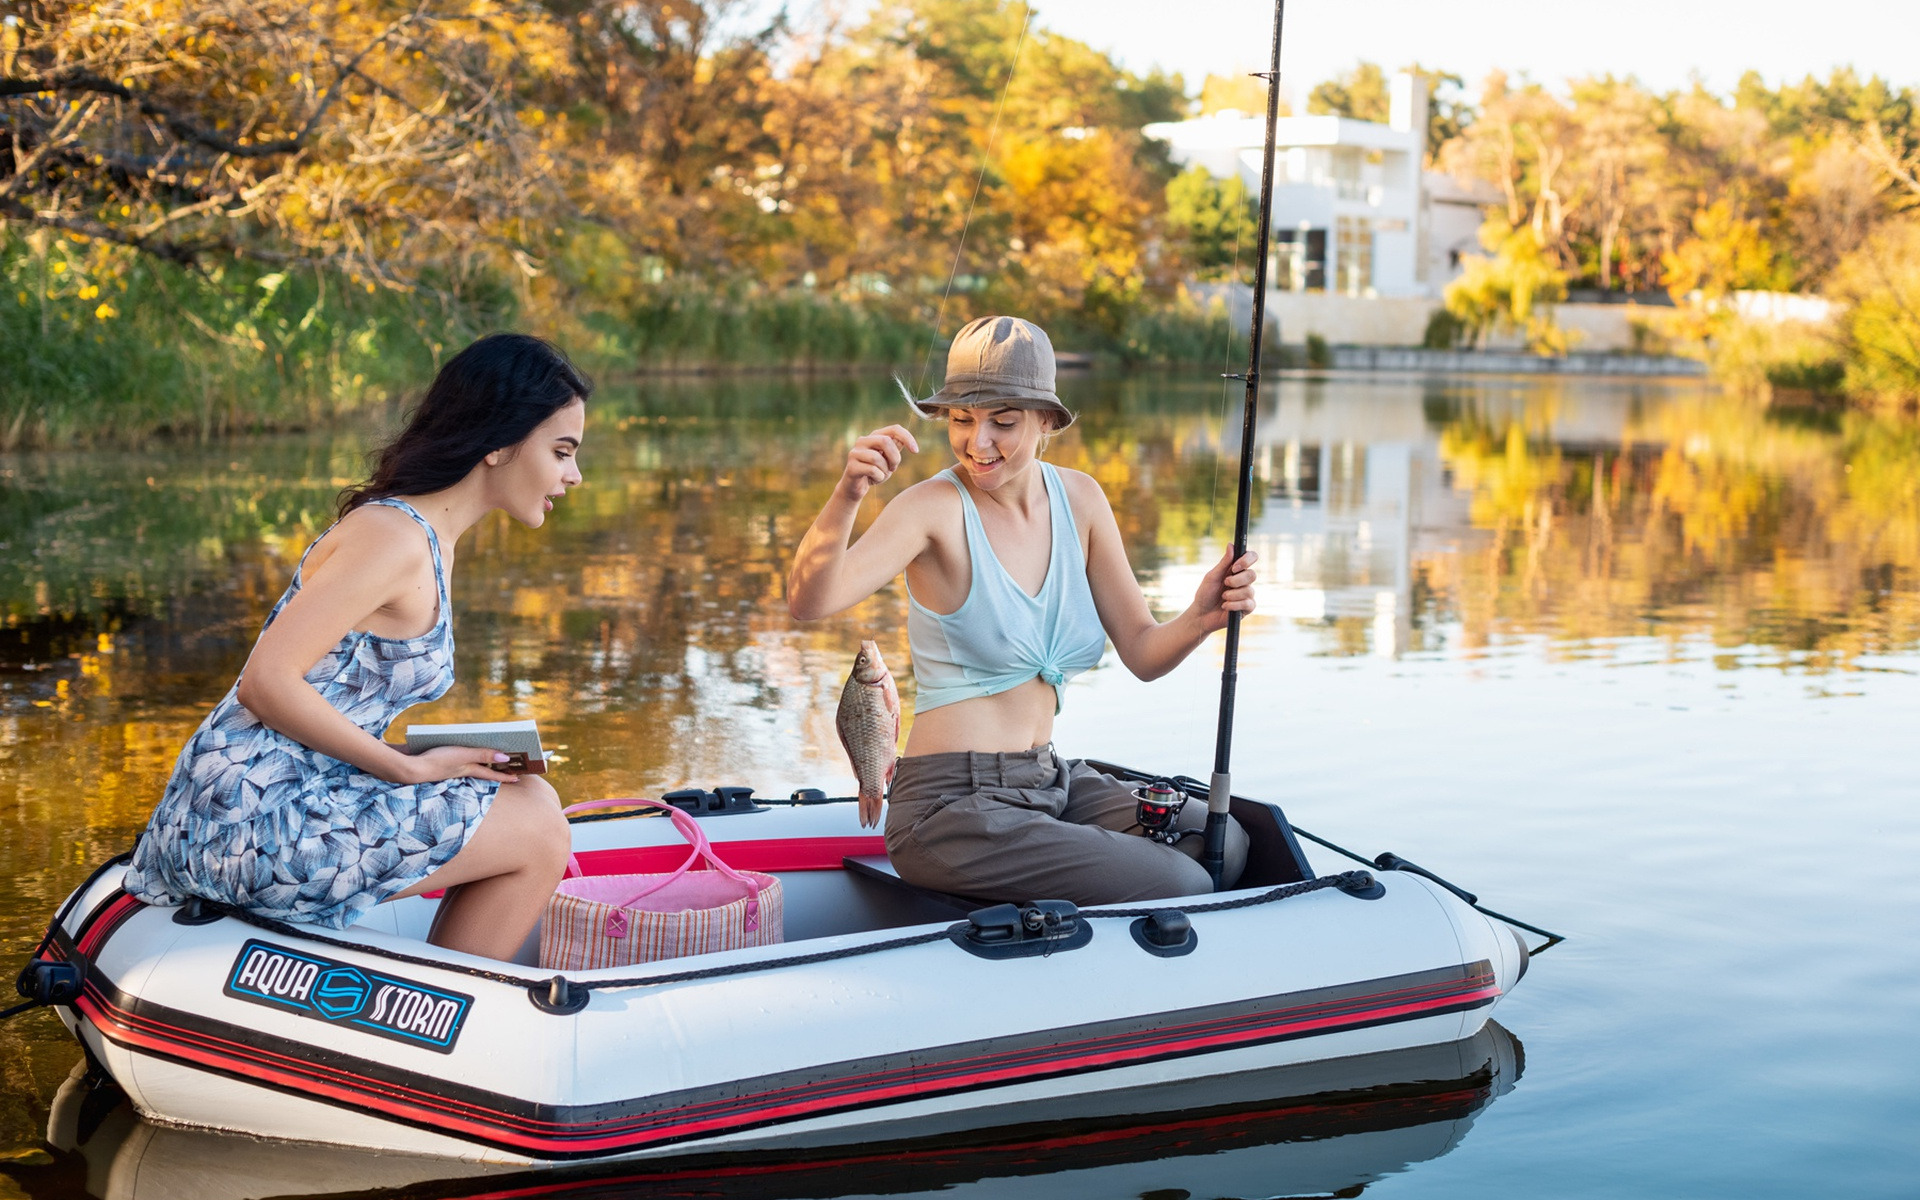 boat-girls-pictures-oral-presentation-topics-related-to-health